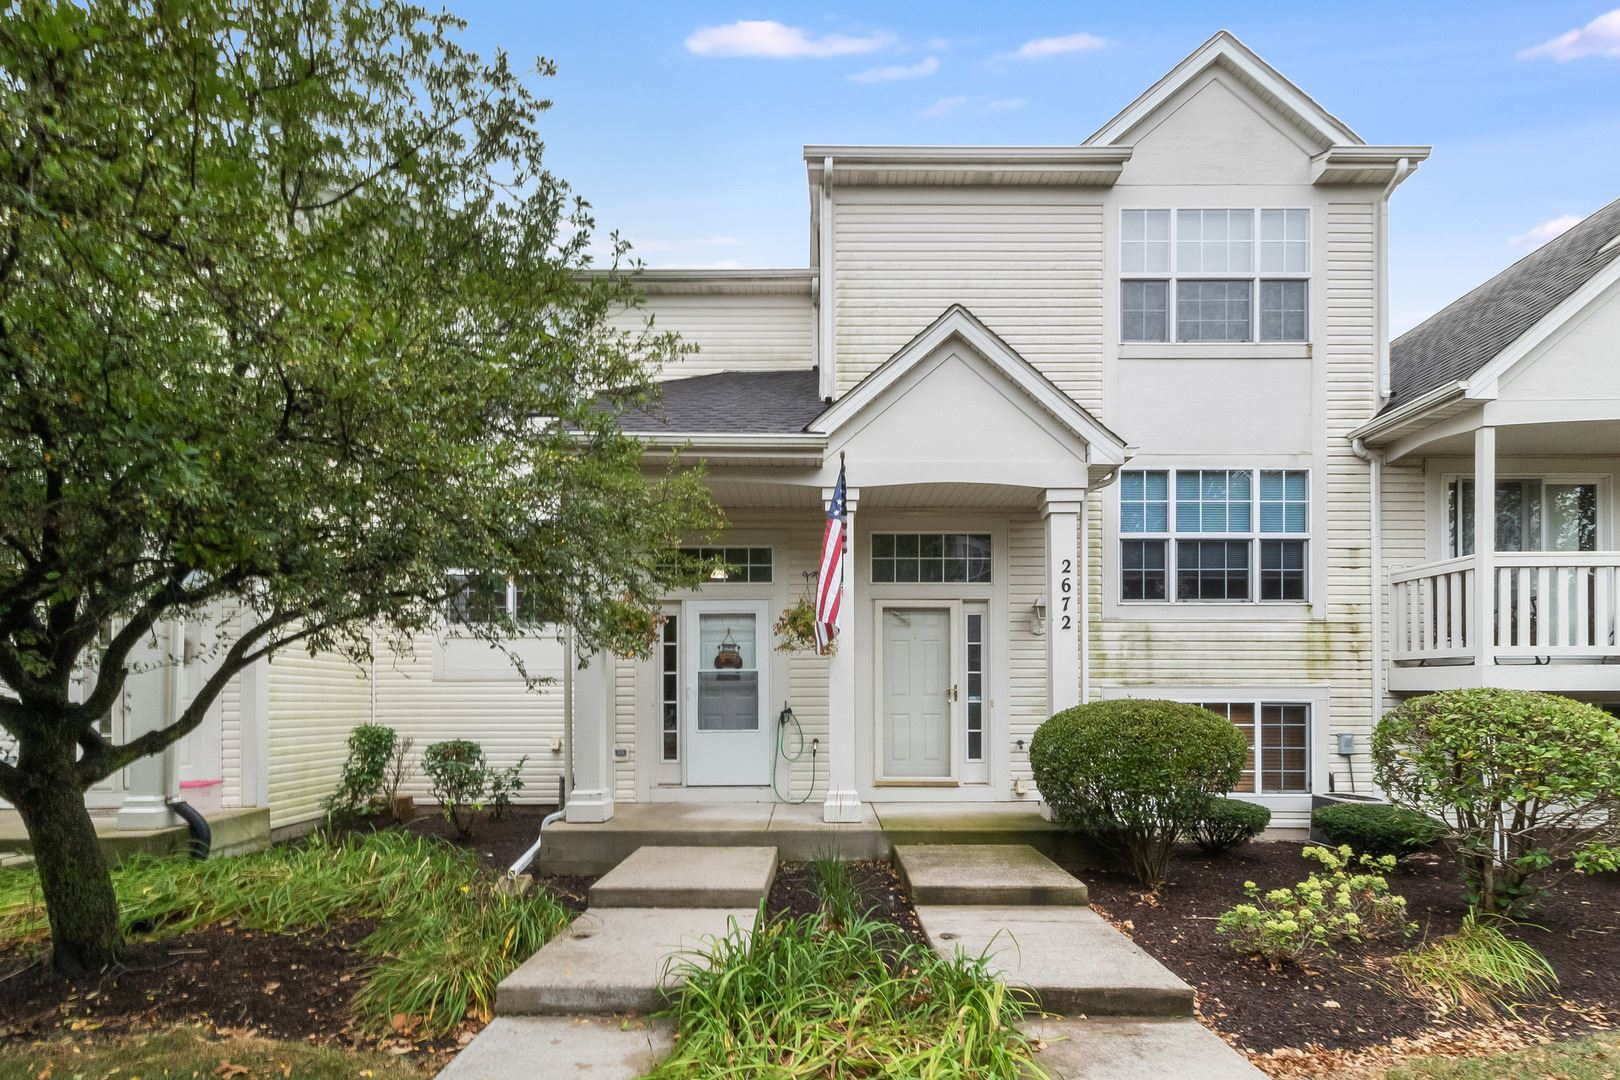 Photo of 2670 Canyon Drive, Plainfield, IL 60586 (MLS # 10857169)